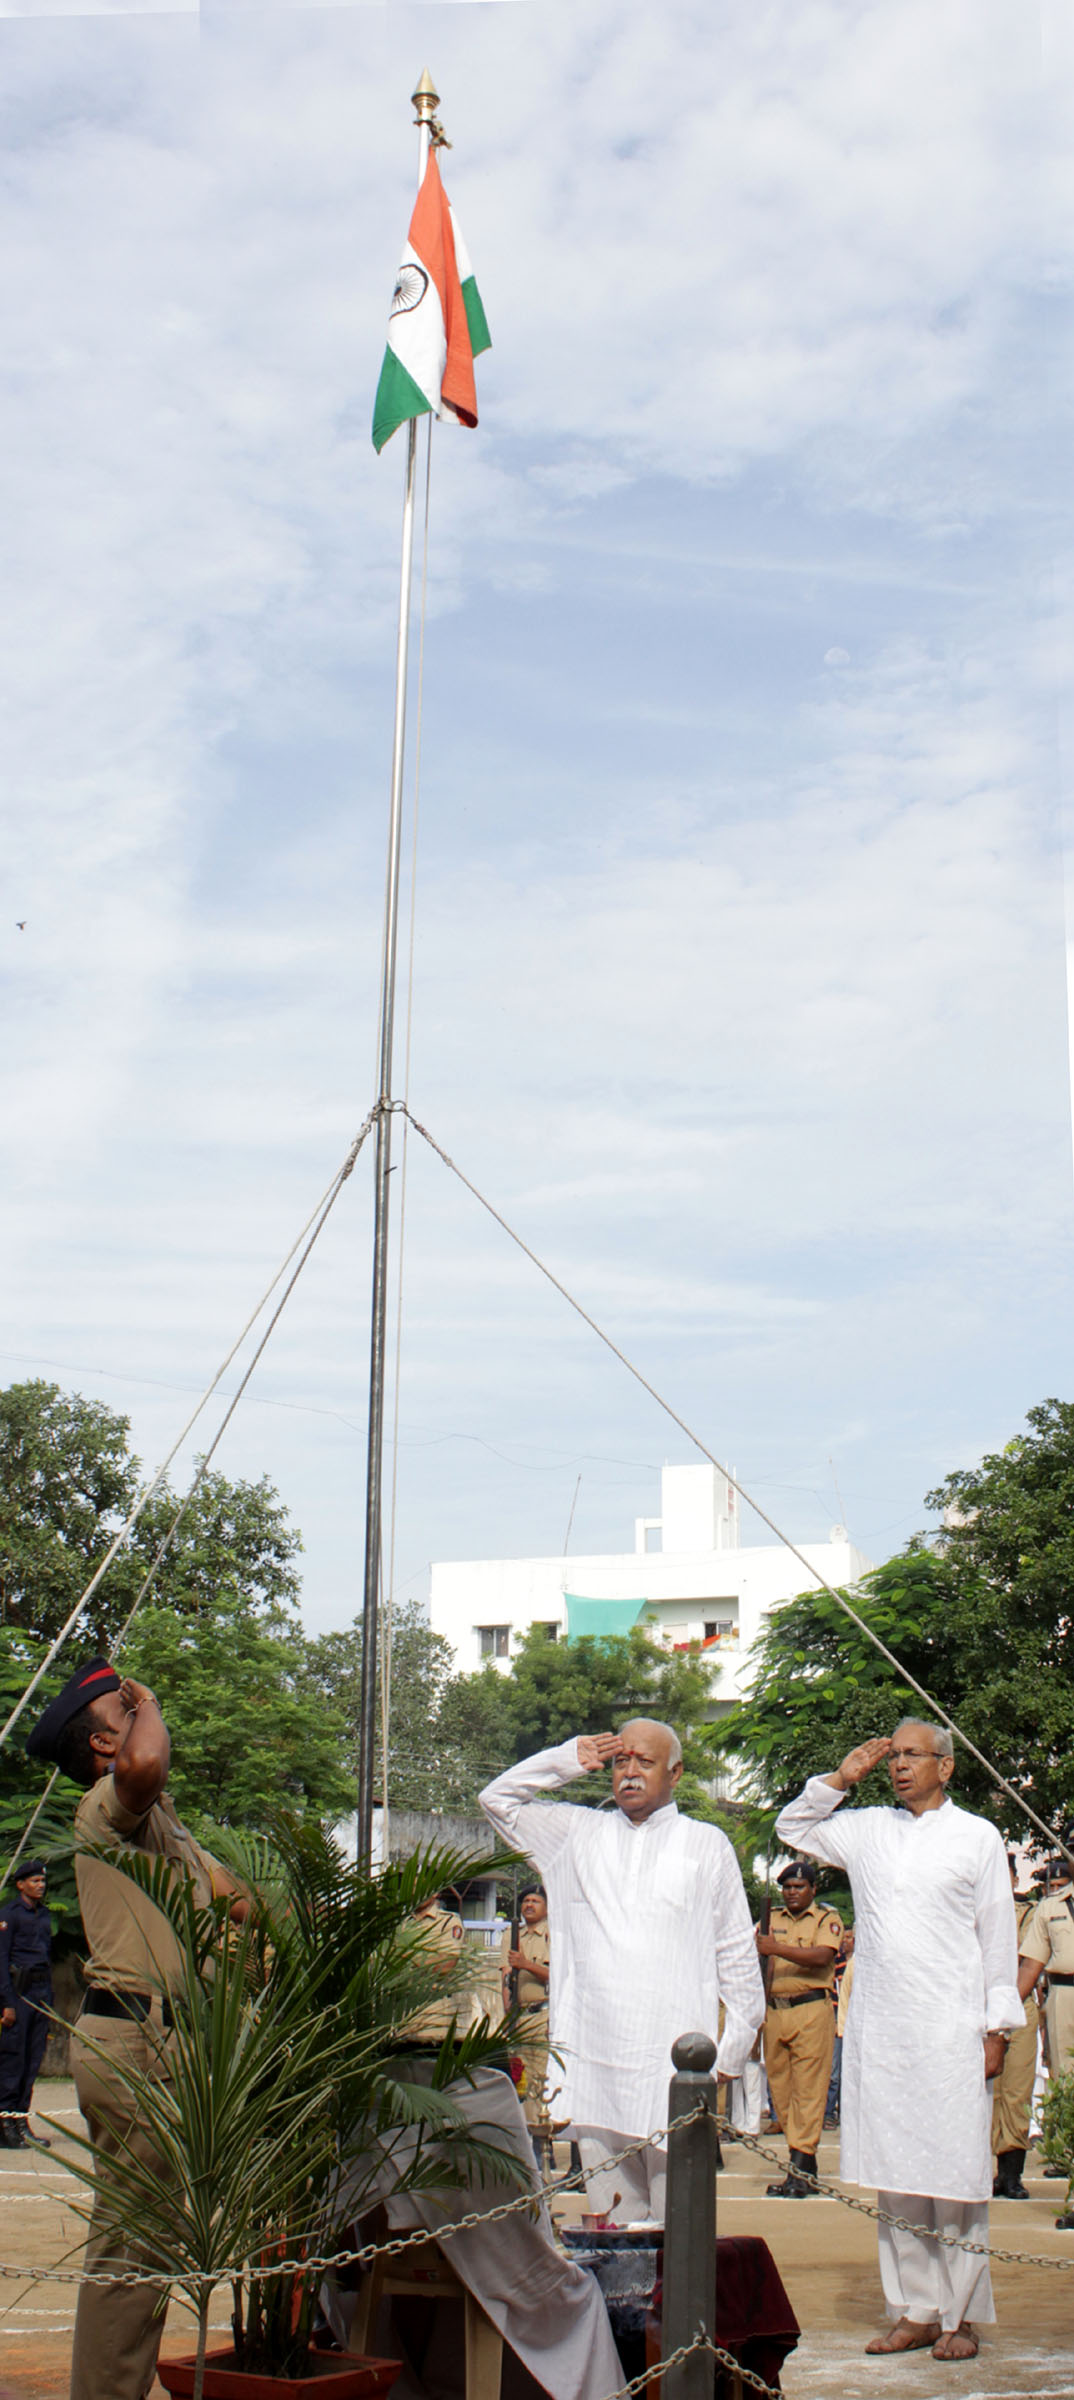 RSS Sarasanghachalak Dr Mohan Bhagwat hoisted National Flag at Dr Hedgewar Bhavan, Mahal, Nagpur today morning